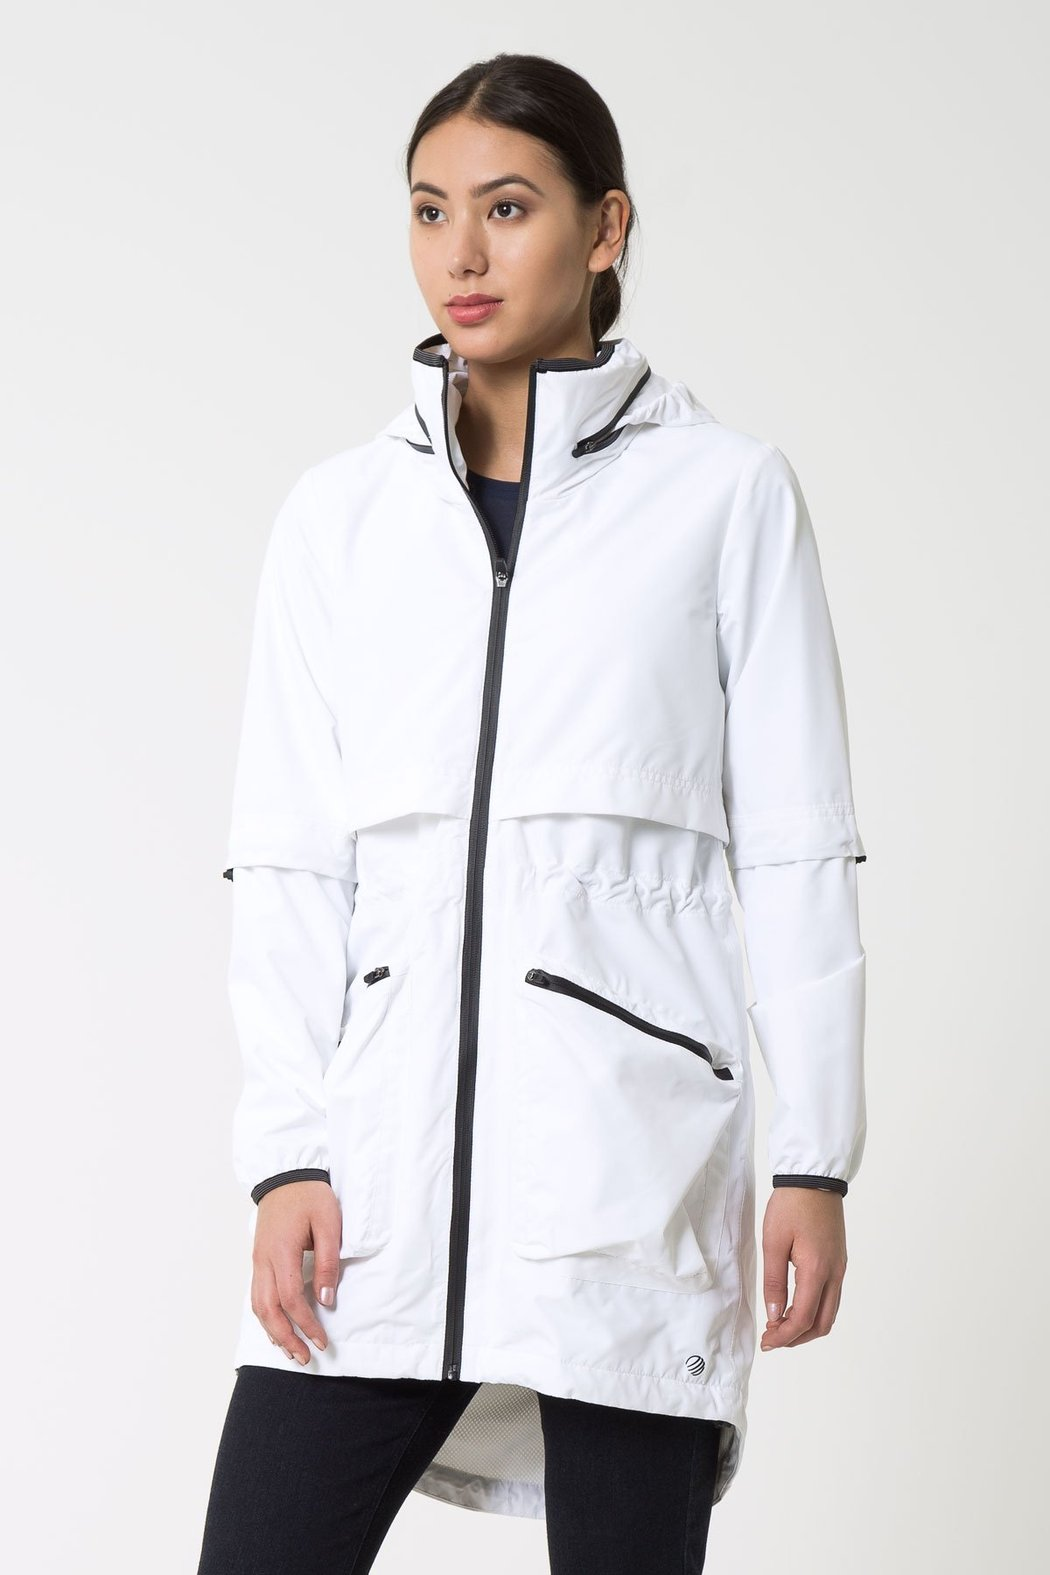 H2O 2.0 MAGIC RAIN JACKET - MPG - White